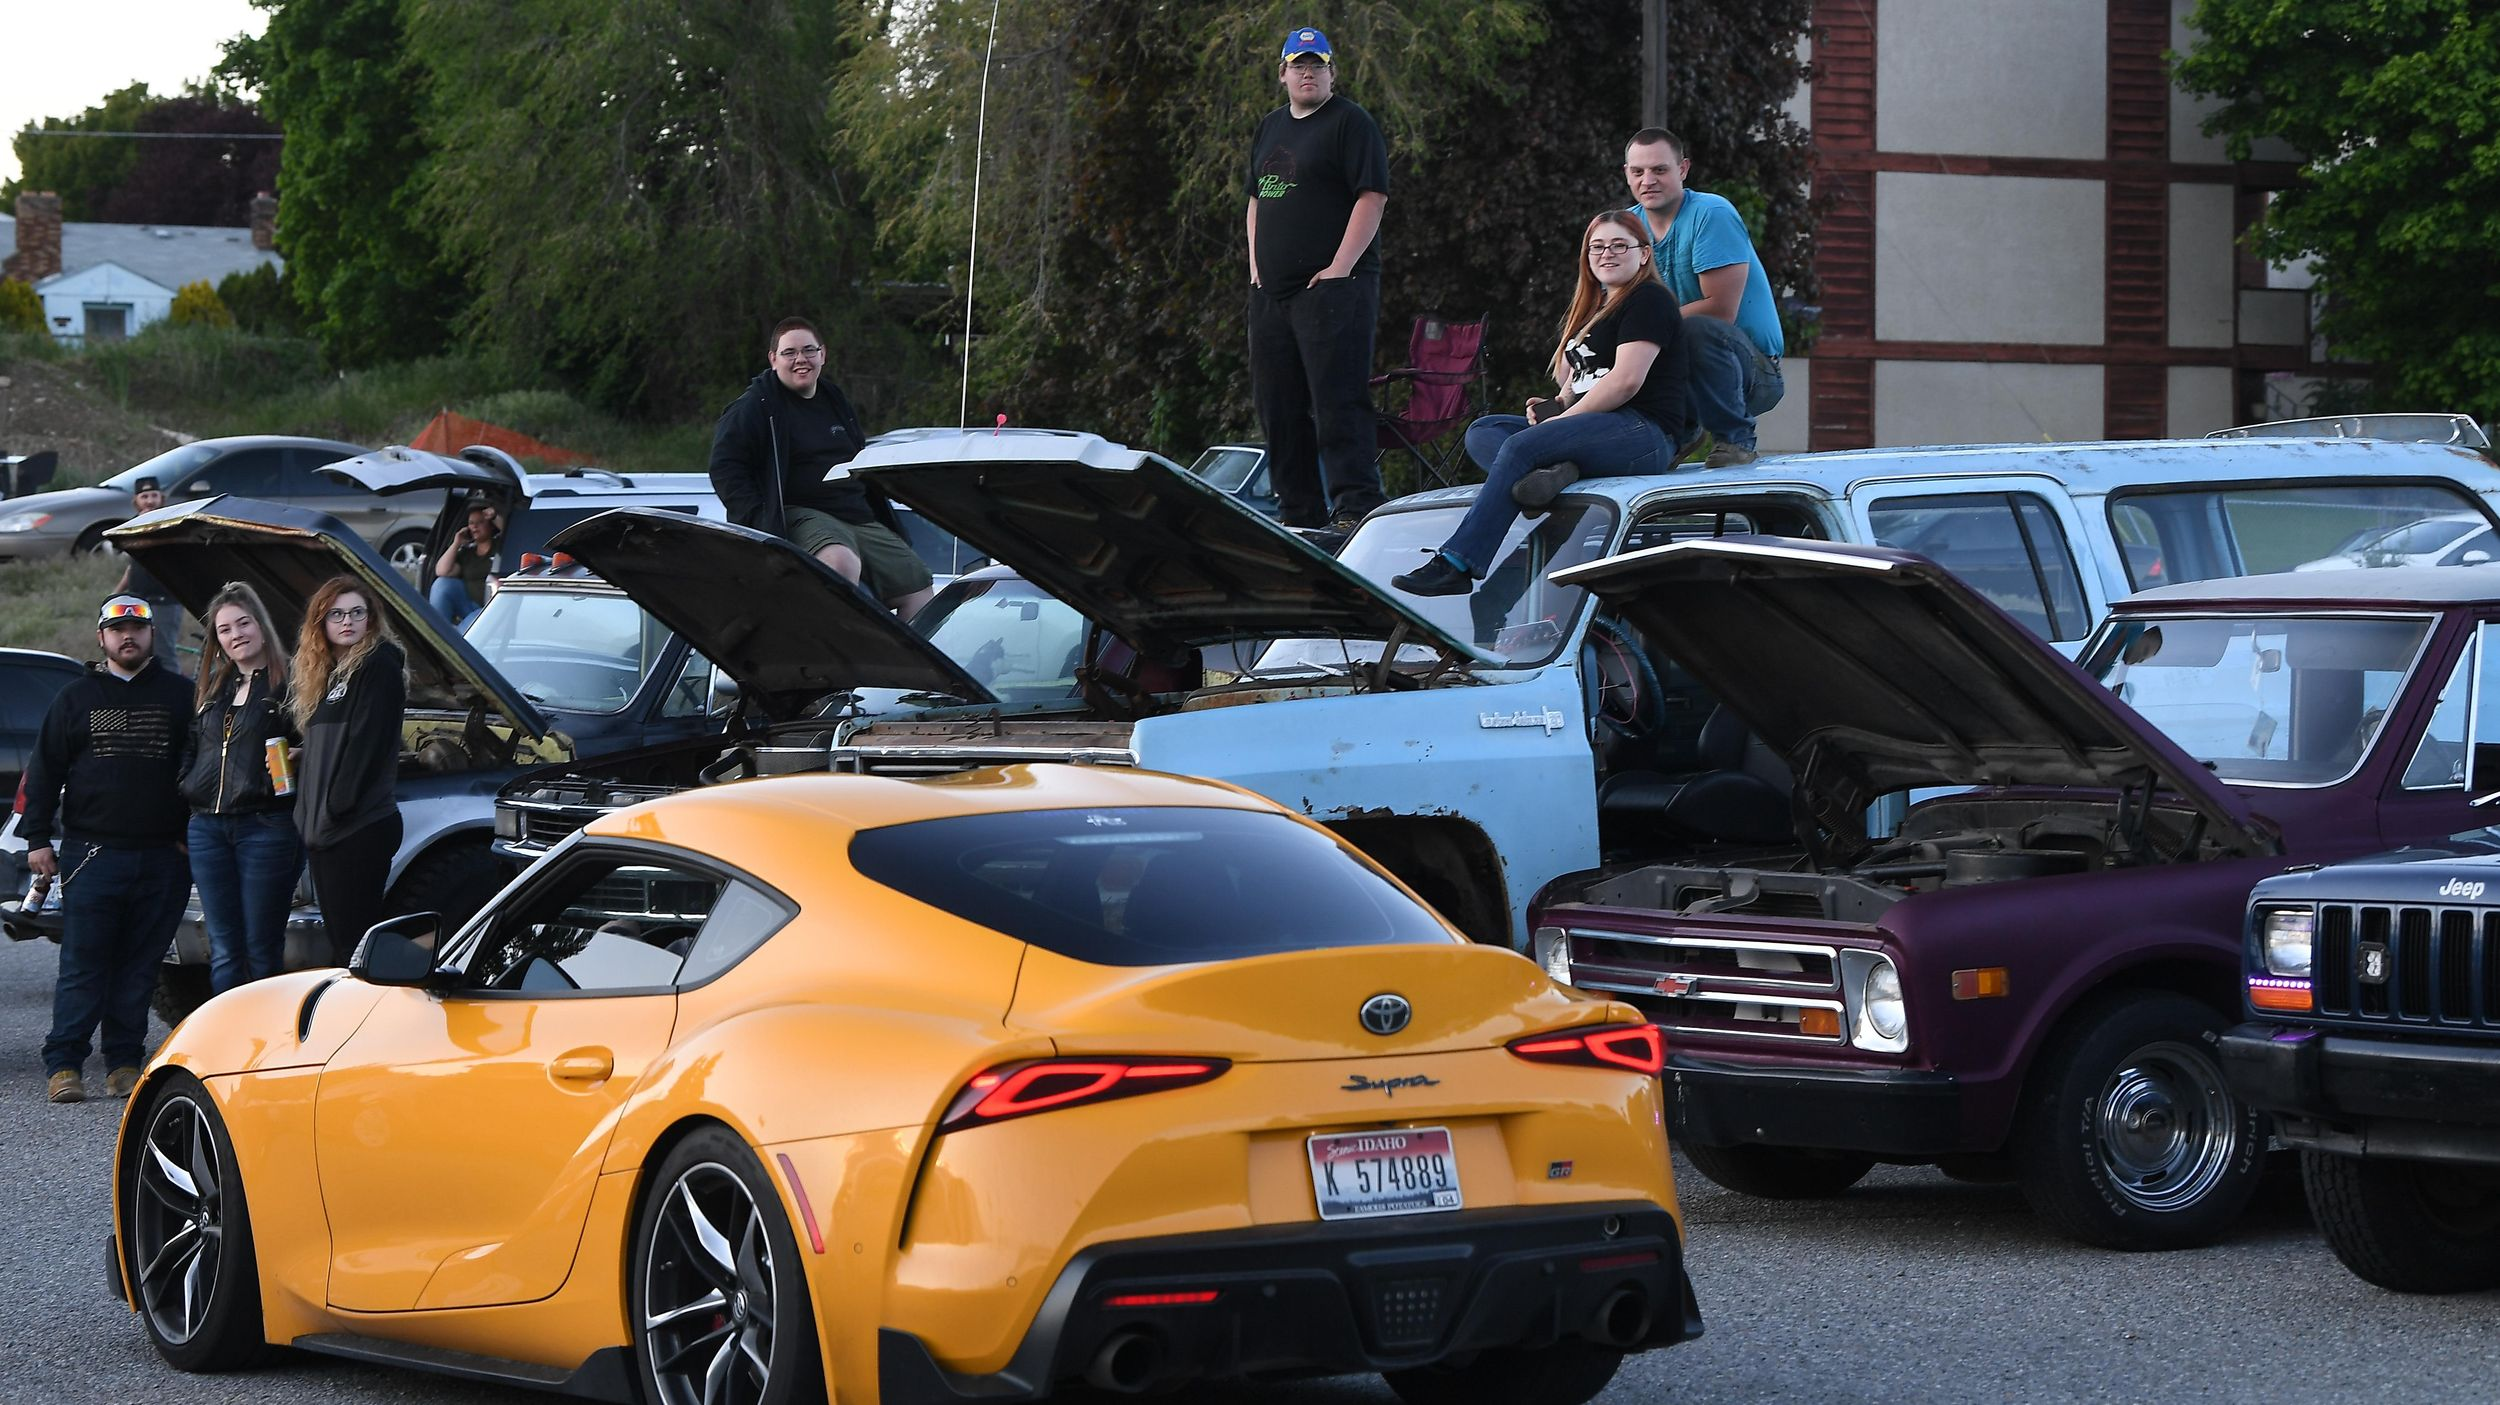 gearheads stay social at spokane valley car meets despite virus concerns the spokesman review gearheads stay social at spokane valley